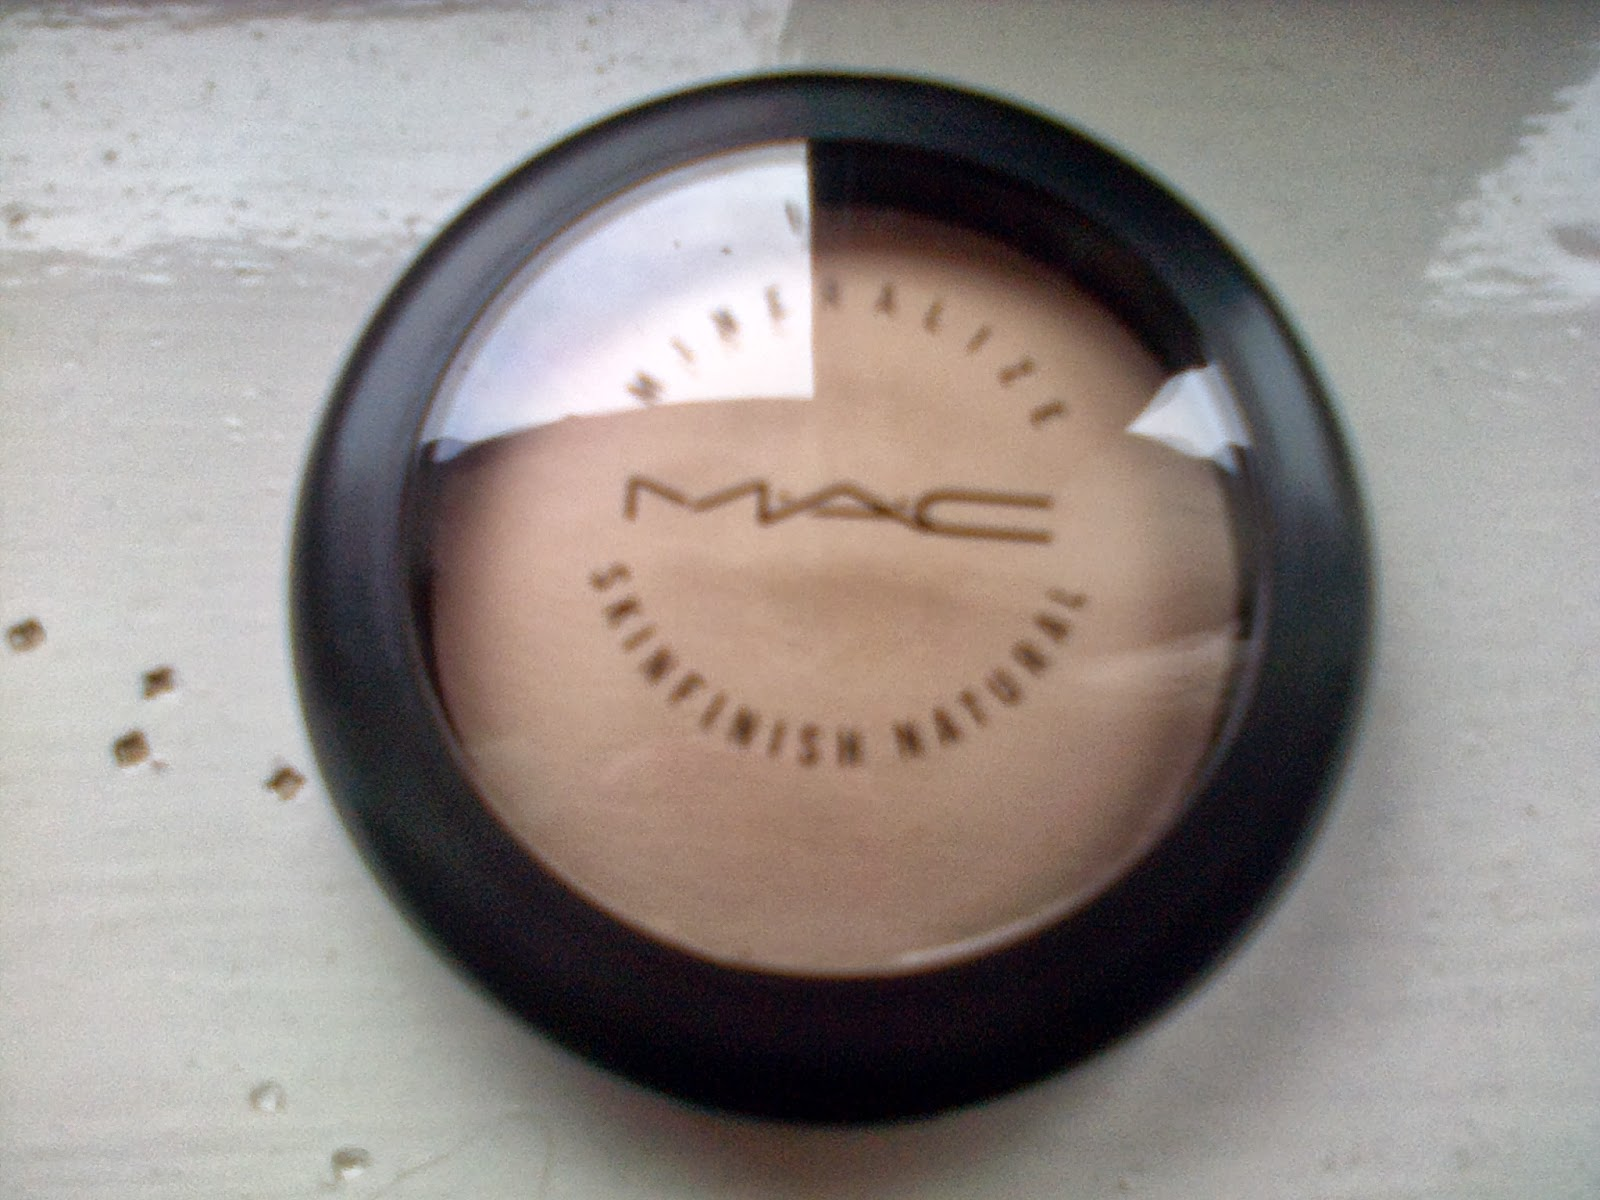 MAC Mineralize Skinfinish Natural in Light